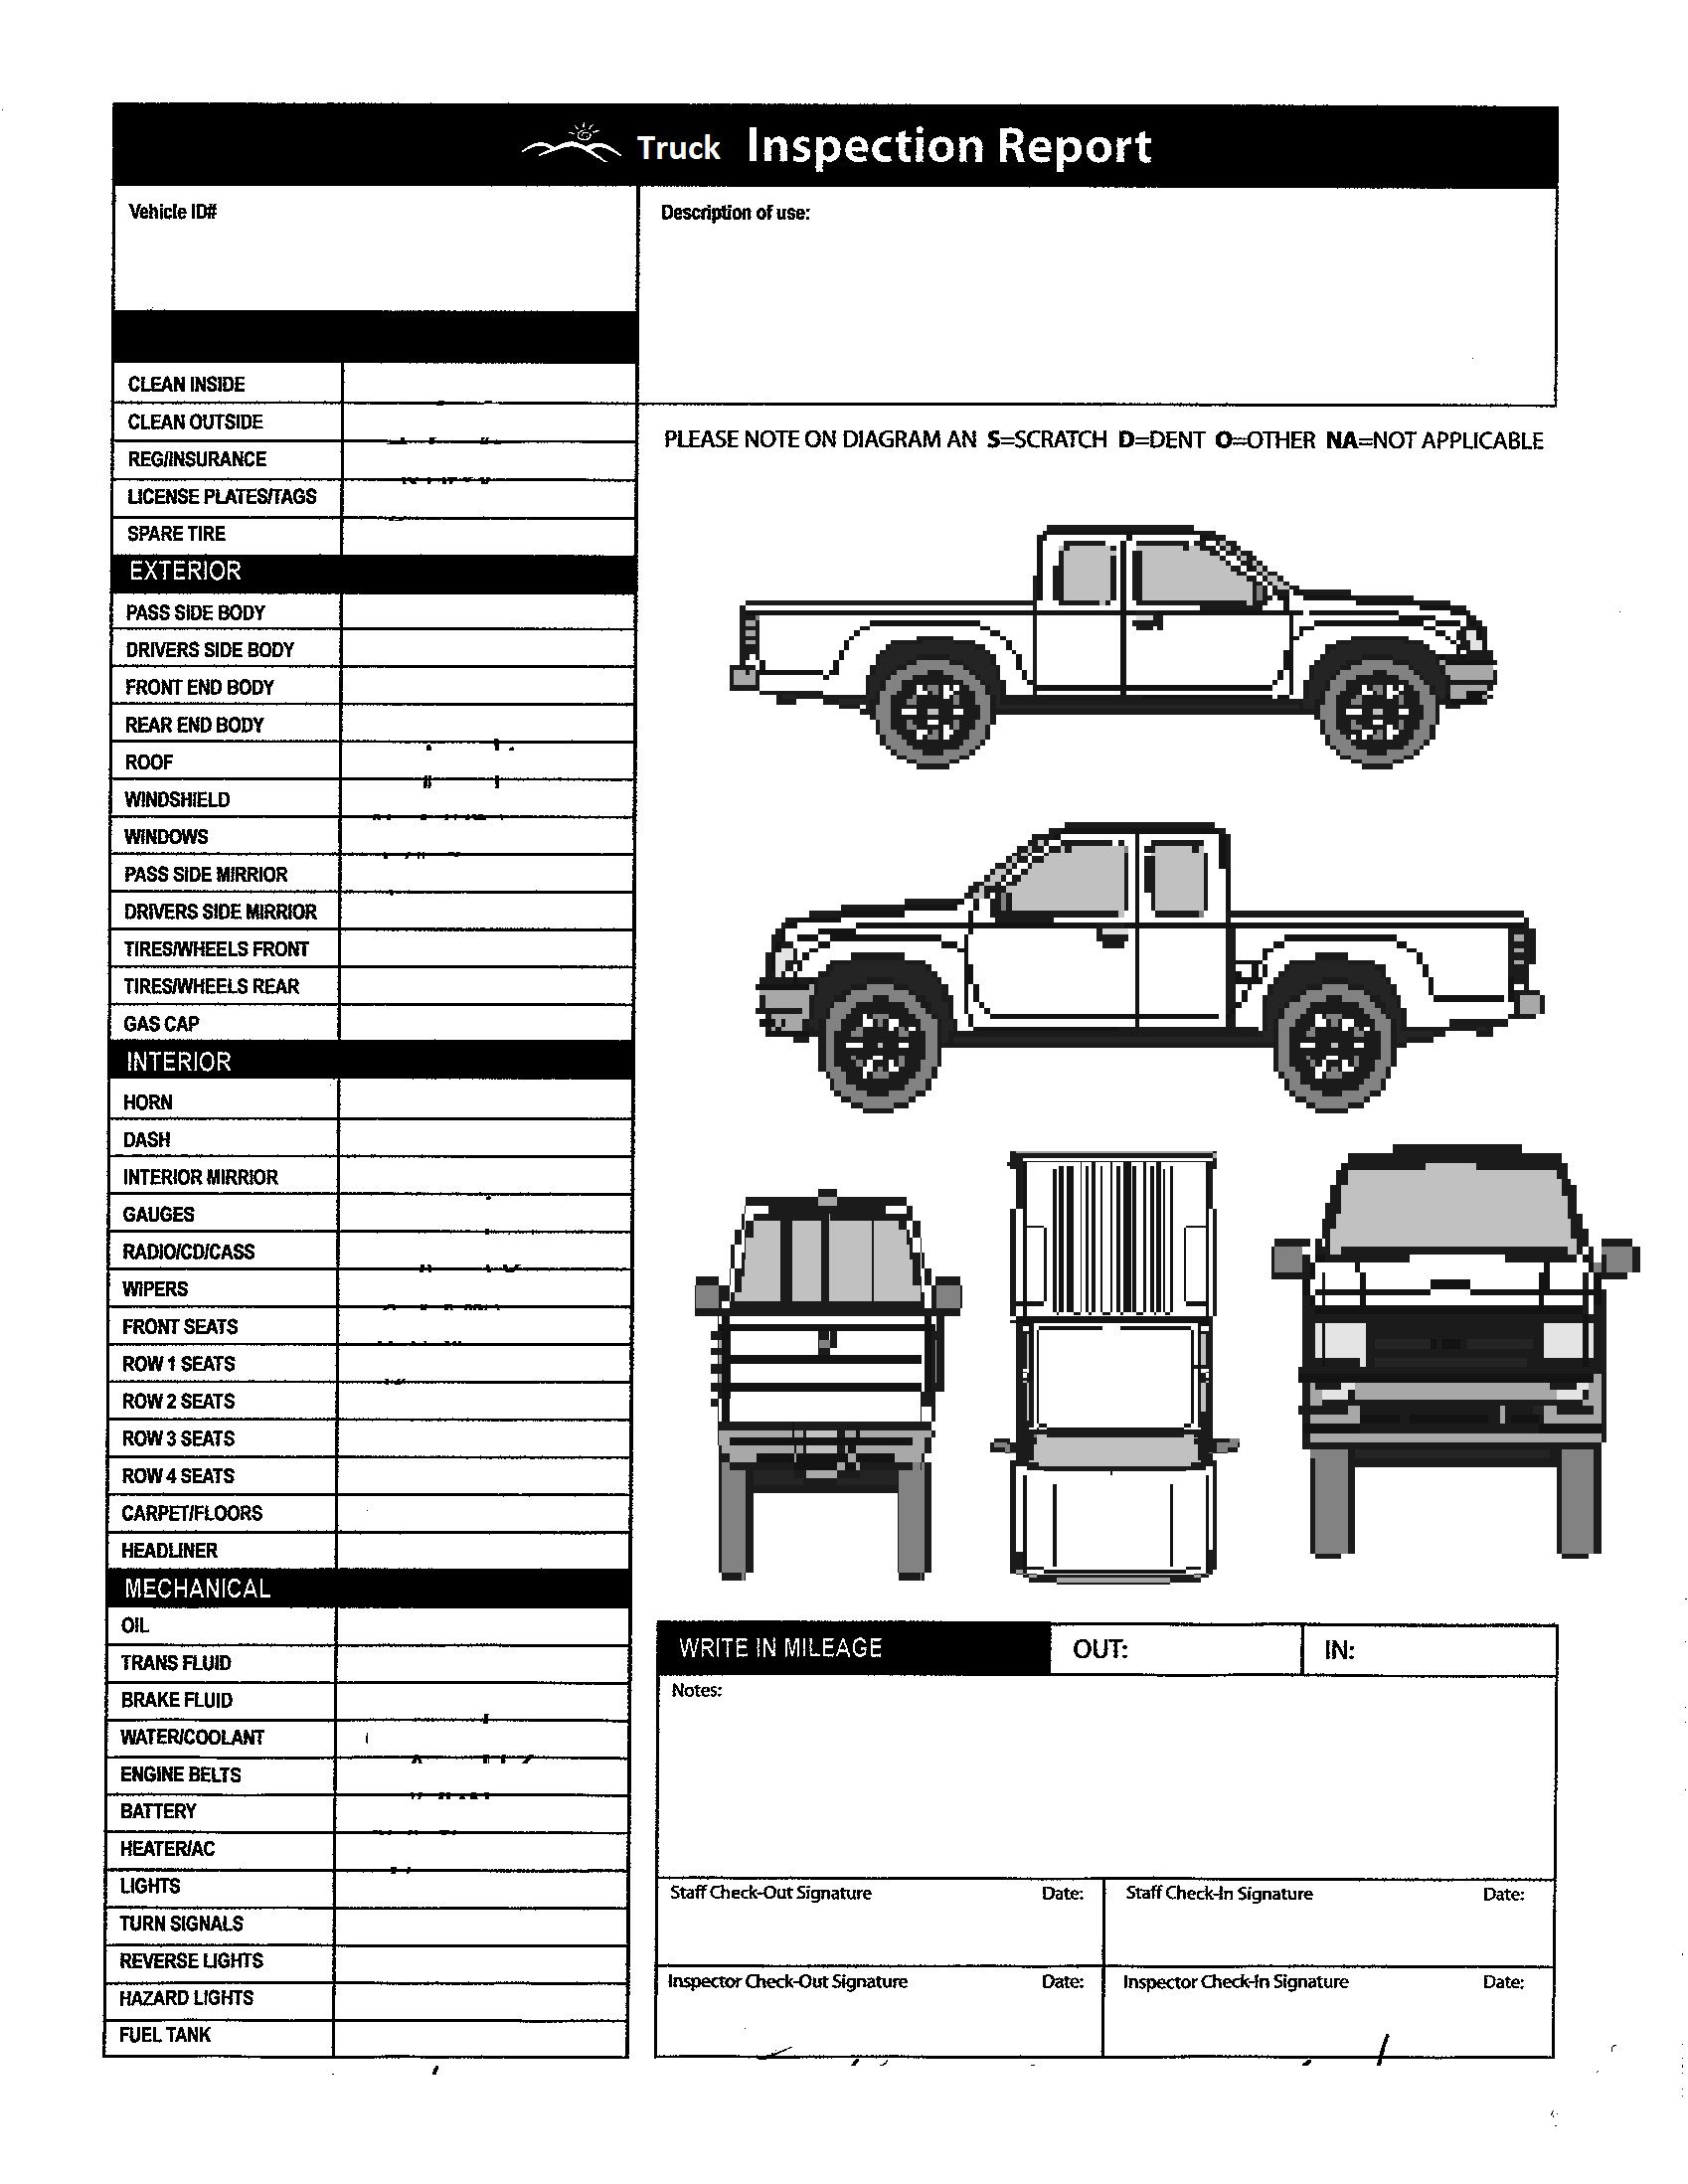 008 Phenomenal Truck Inspection Form Template Image  Commercial Vehicle Maintenance FreeFull